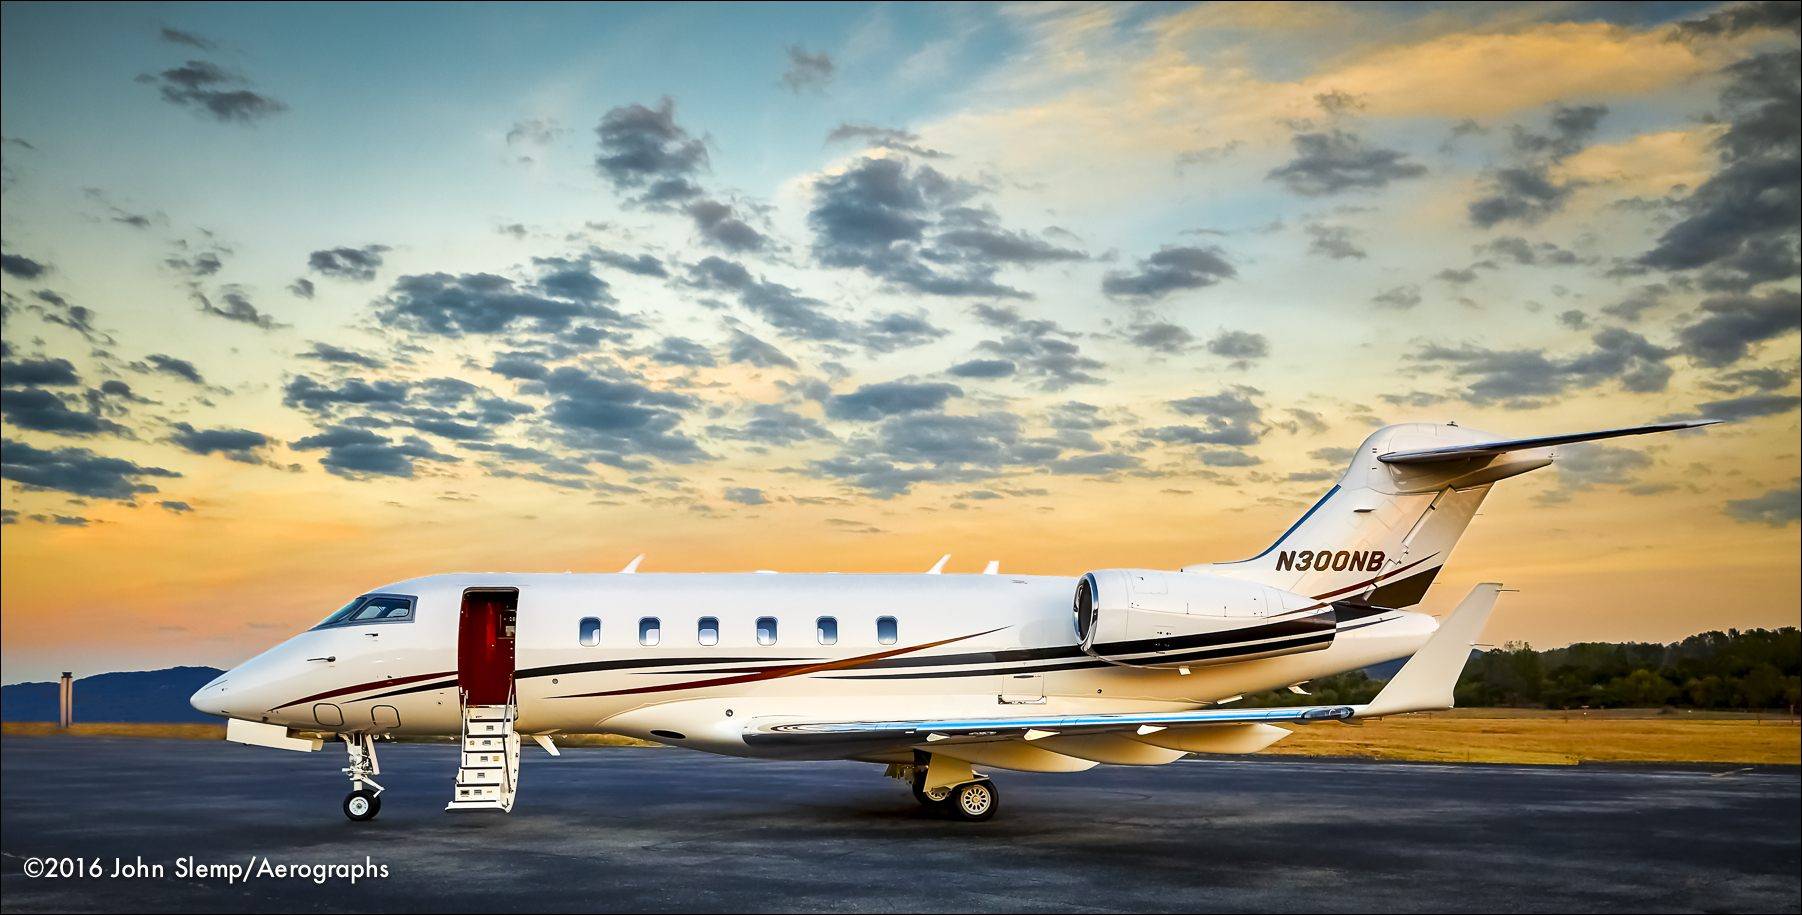 Bombardier Challenger 300 owned by the Nelson Brothers company in Birmingham, Alabama.